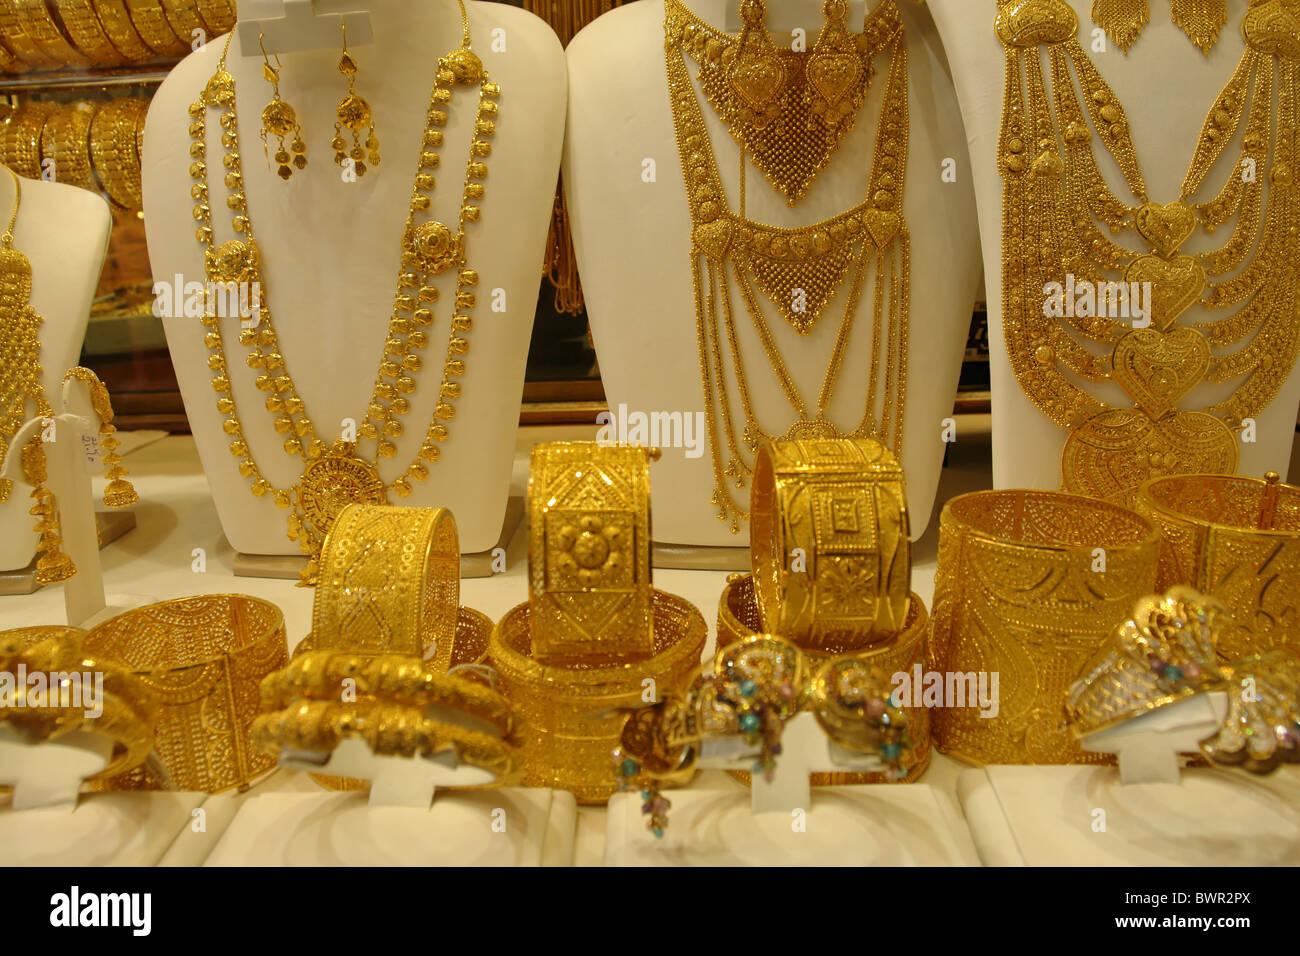 gold for united high jewelry detail emirates picture central photography photo arab sharjah at souk sale stock res